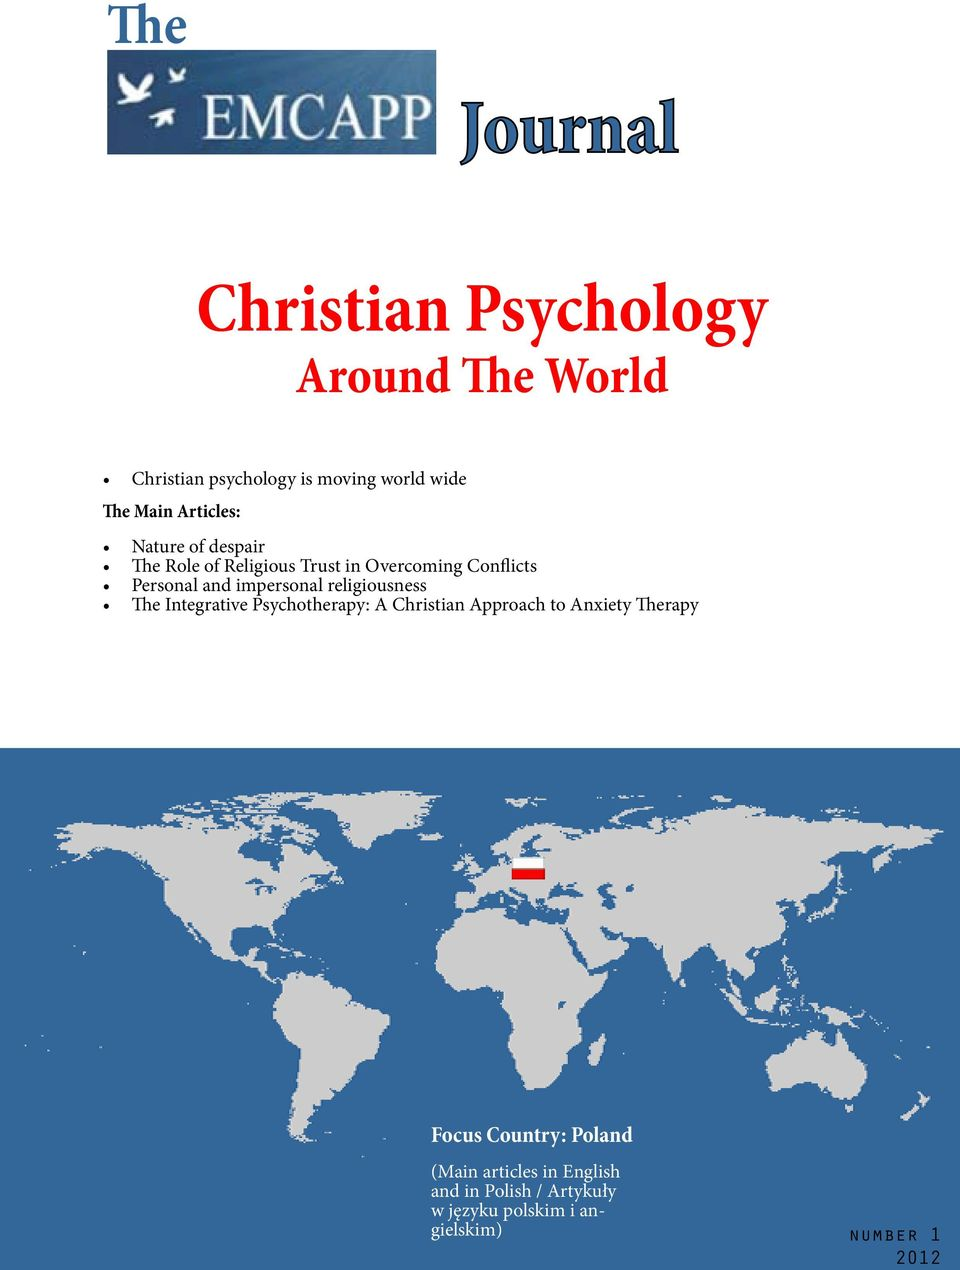 impersonal religiousness The Integrative Psychotherapy: A Christian Approach to Anxiety Therapy Focus